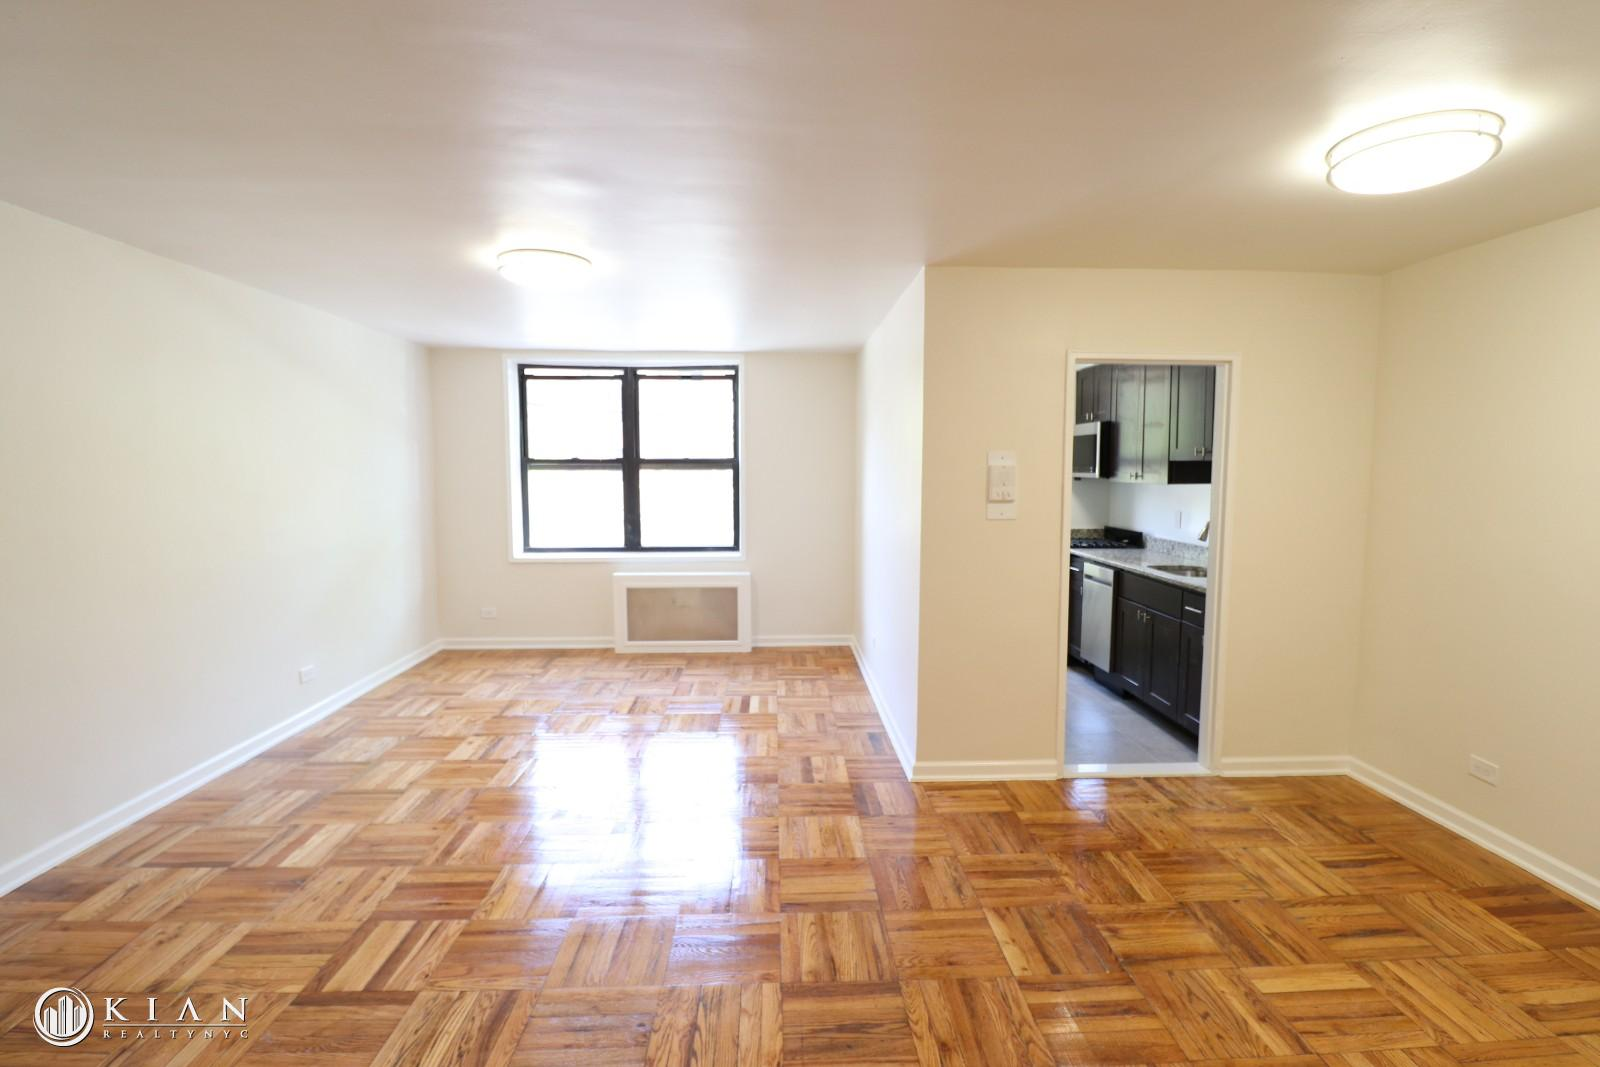 132-25 Maple Avenue, Apt 104, Queens, New York 11355